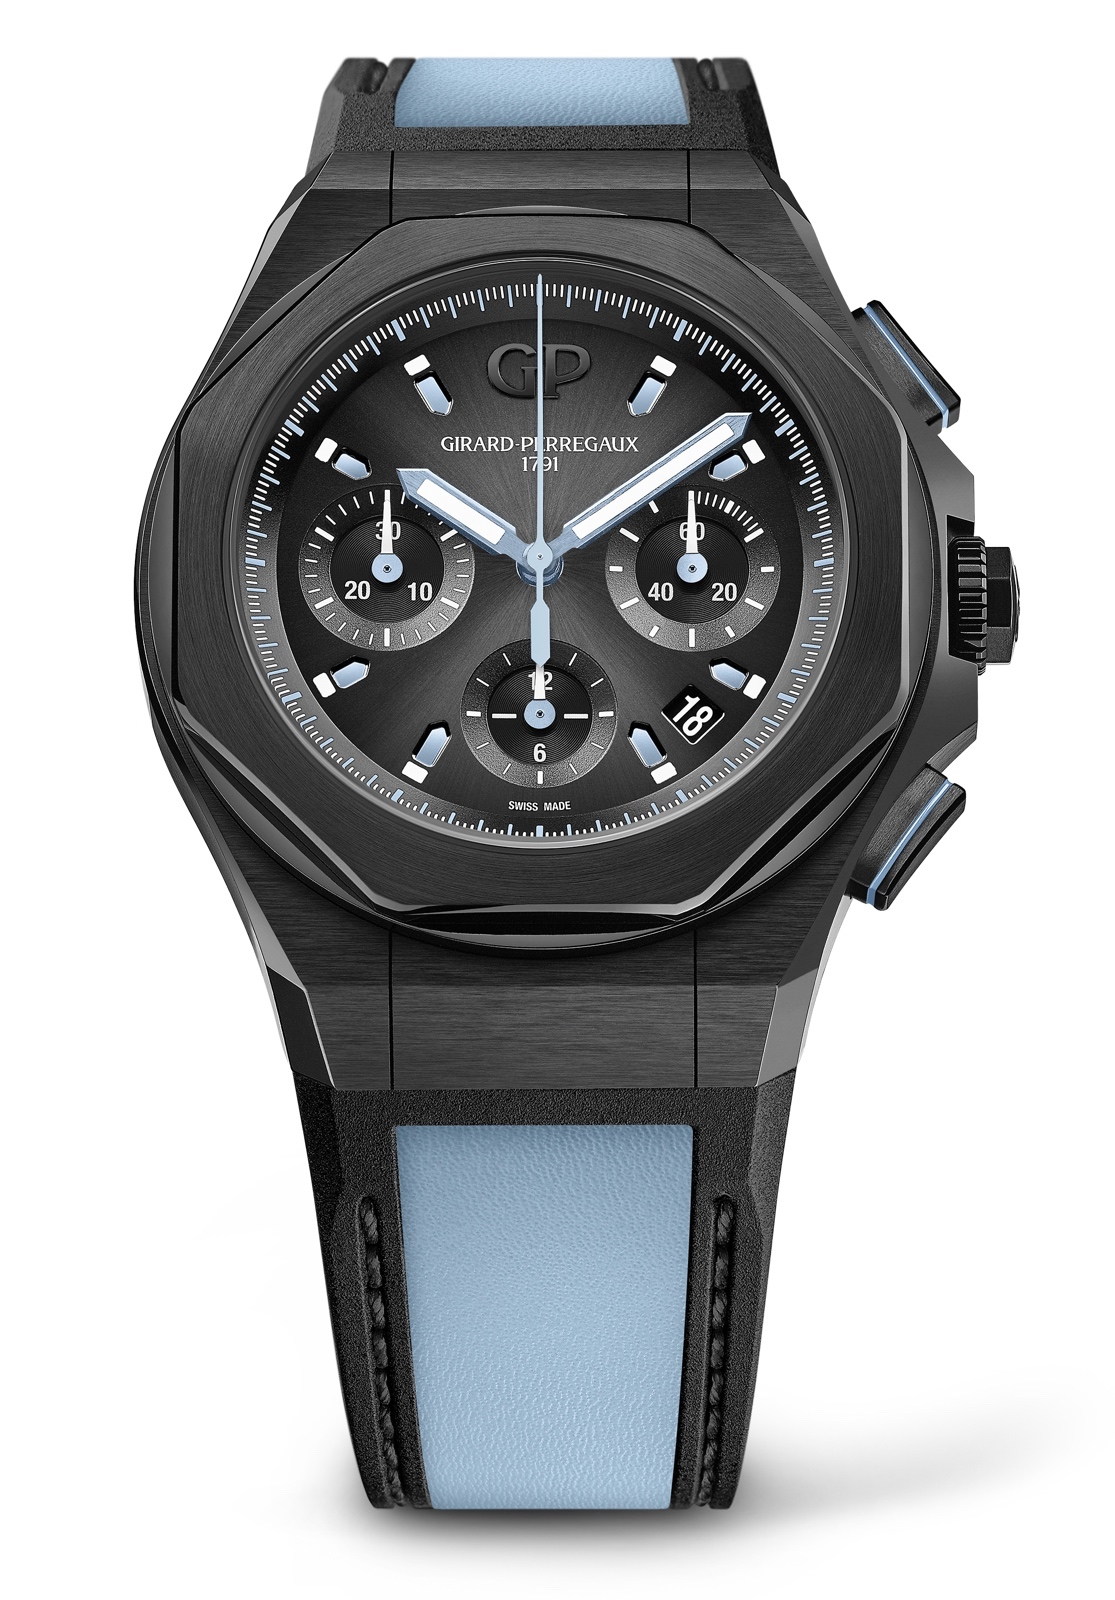 Girard-Perregaux Laureato Absolute Chronograph Only Watch 2019 Soldat